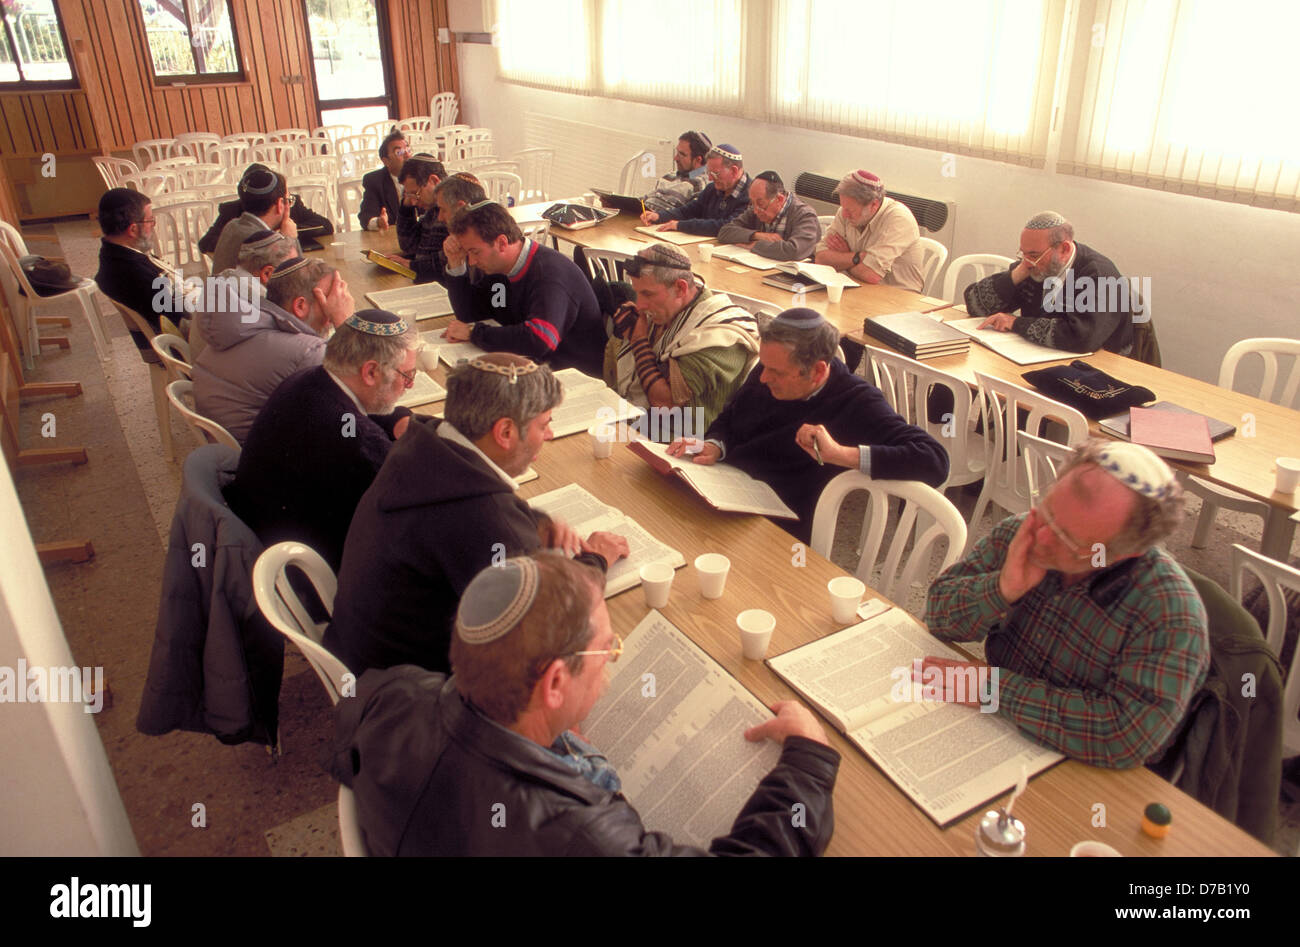 studying daily page from the talmud in the morning, in efrat, gush etzion - Stock Image